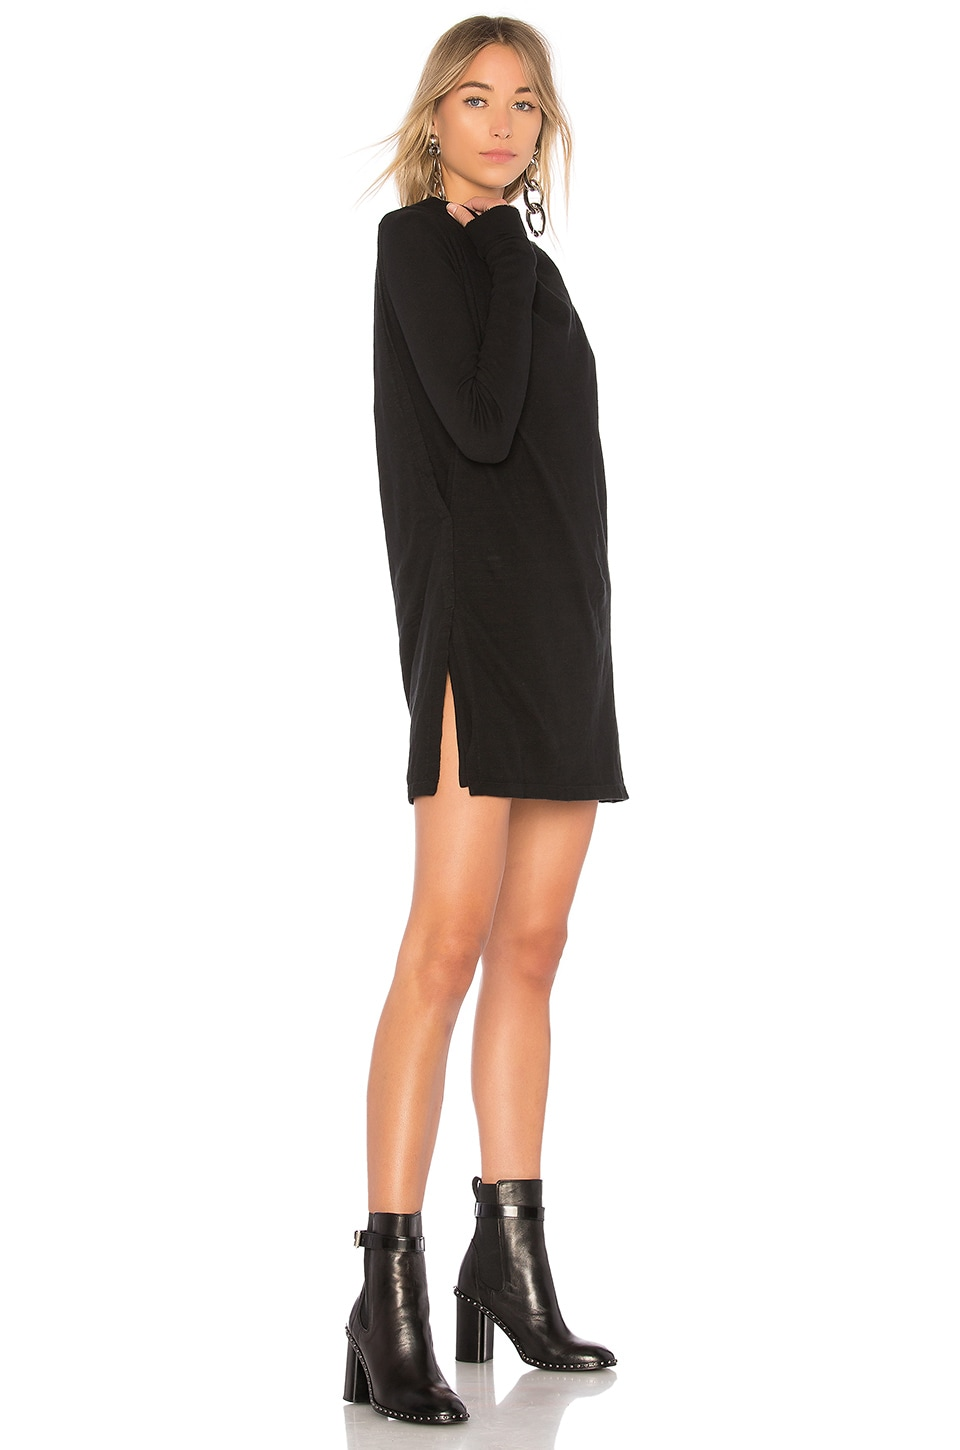 Toga Dress by DRKSHDW by Rick Owens